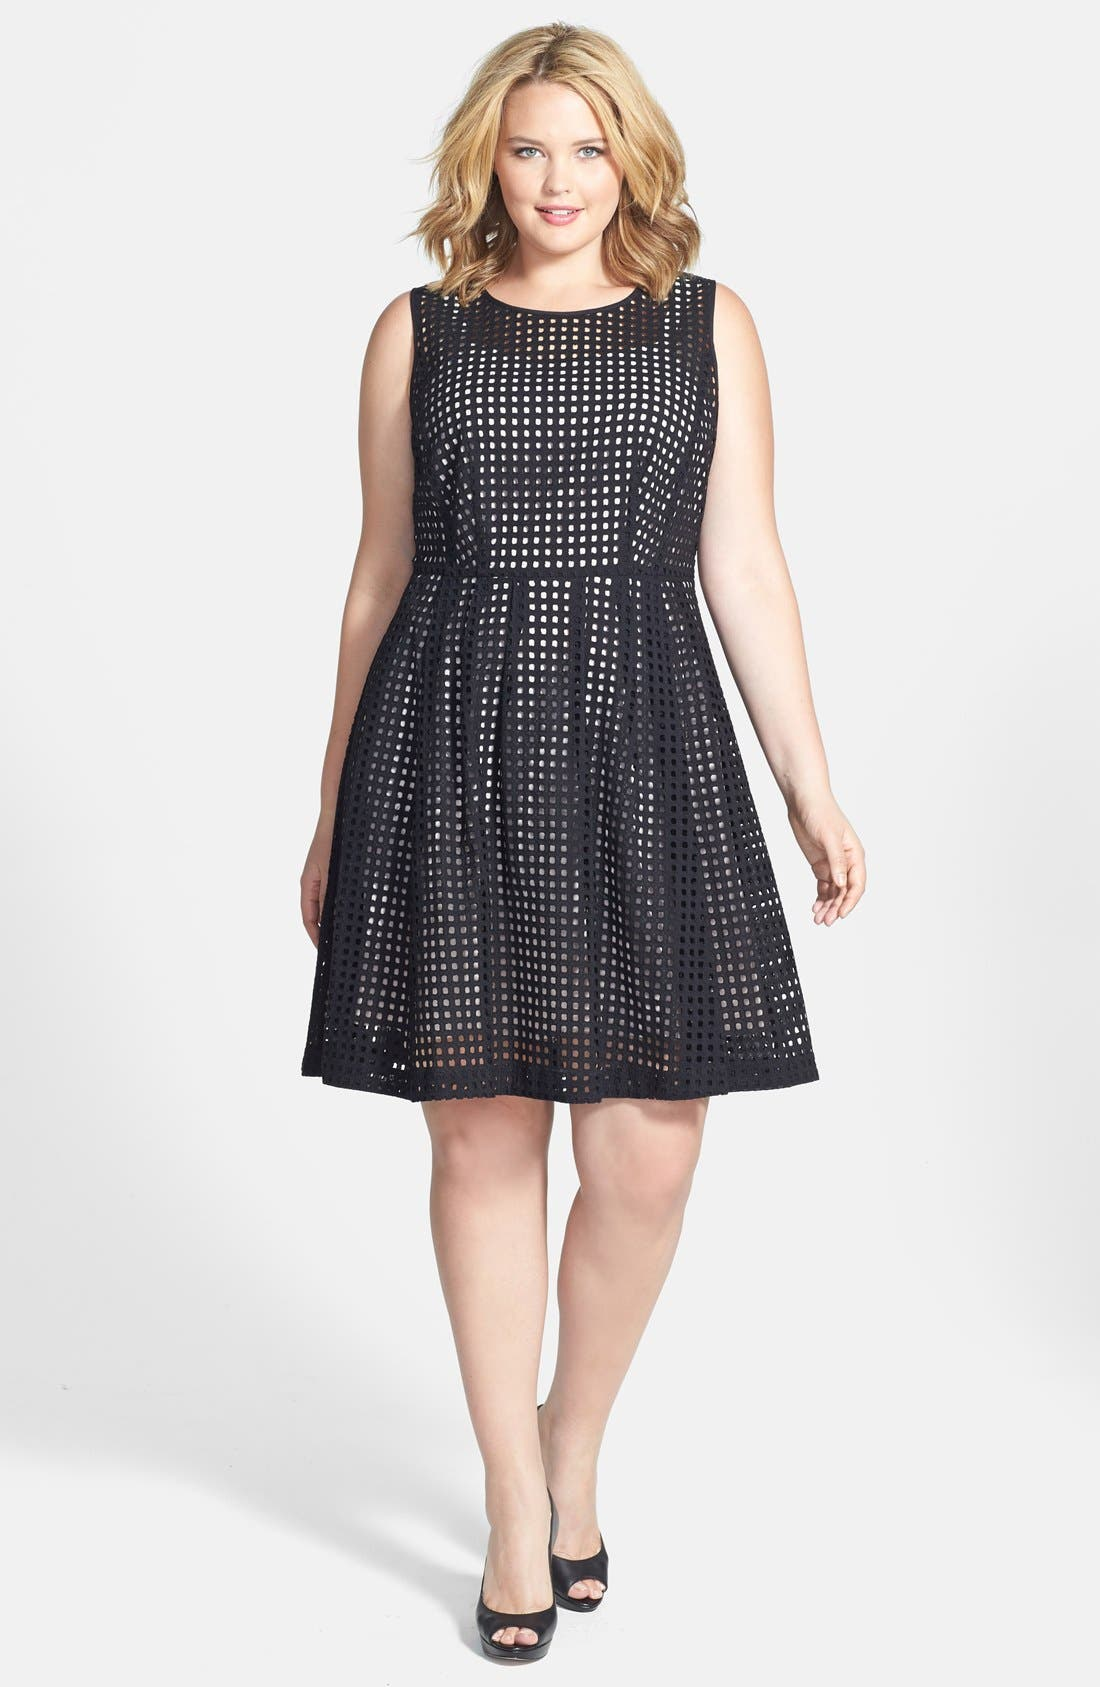 Alternate Image 1 Selected - Halogen® 'Prism' Eyelet Cotton Fit & Flare Dress (Plus Size)